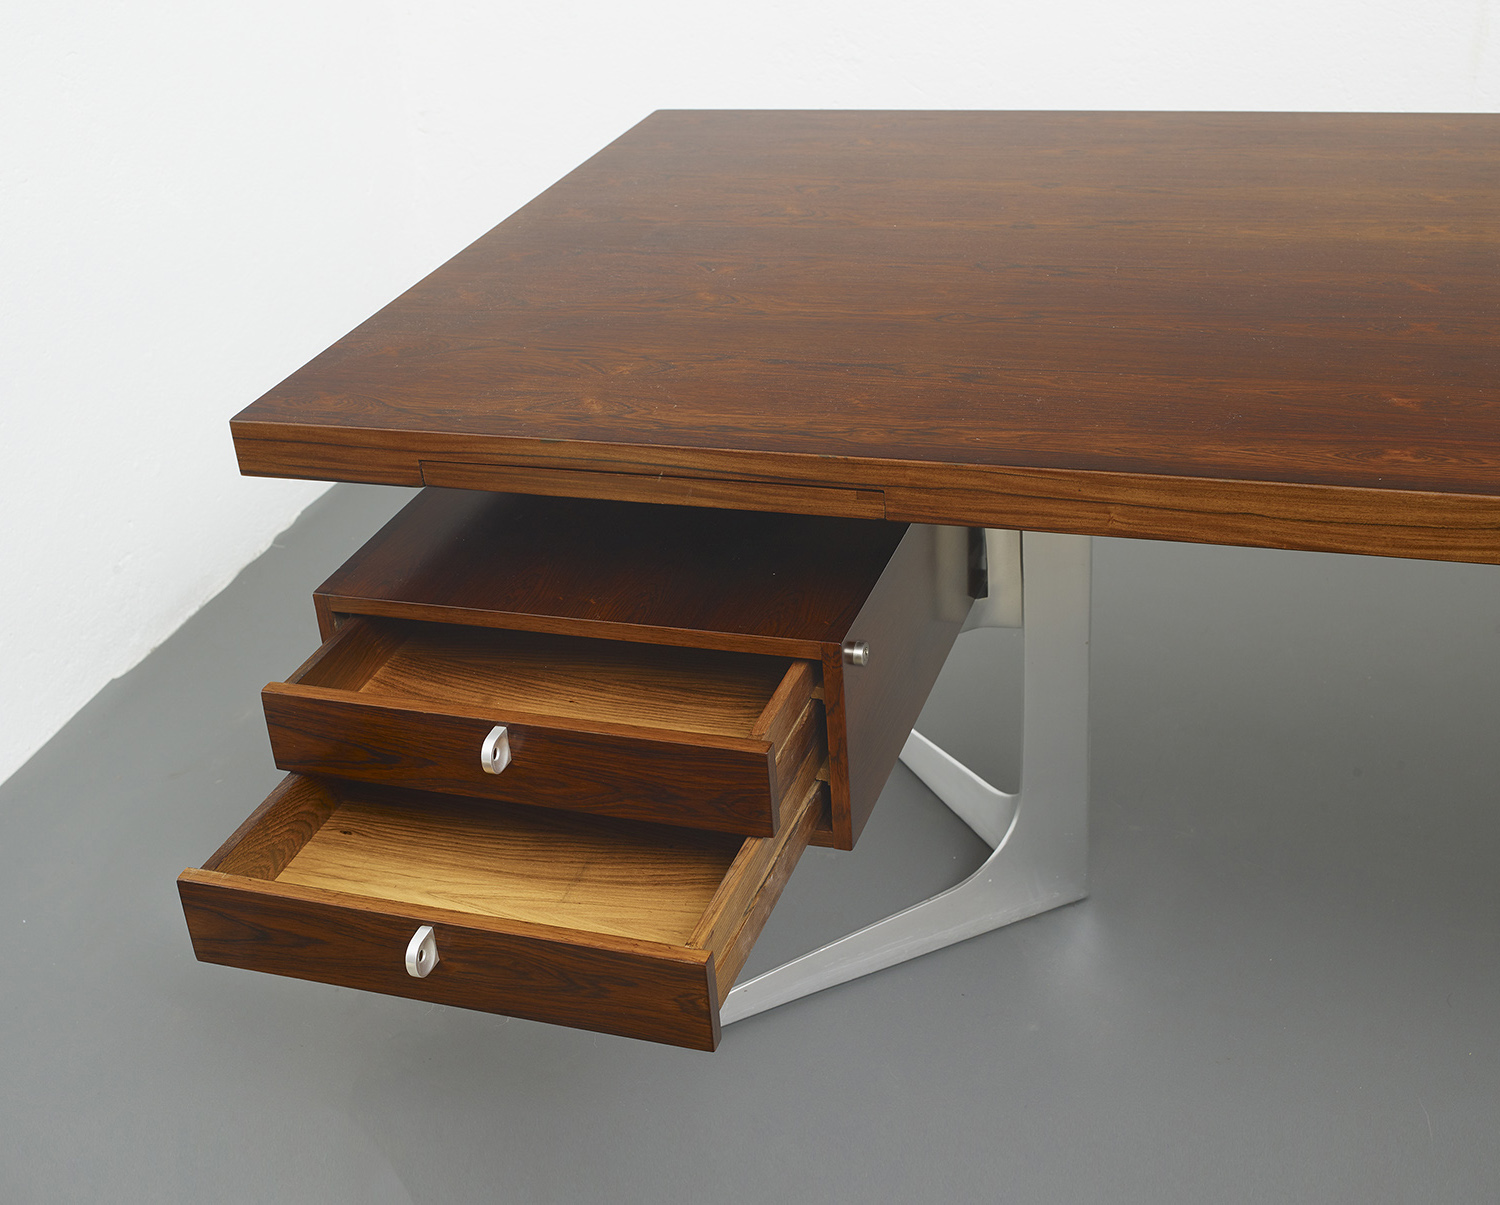 herbert-hirche-executive-rosewood-desk-image-06